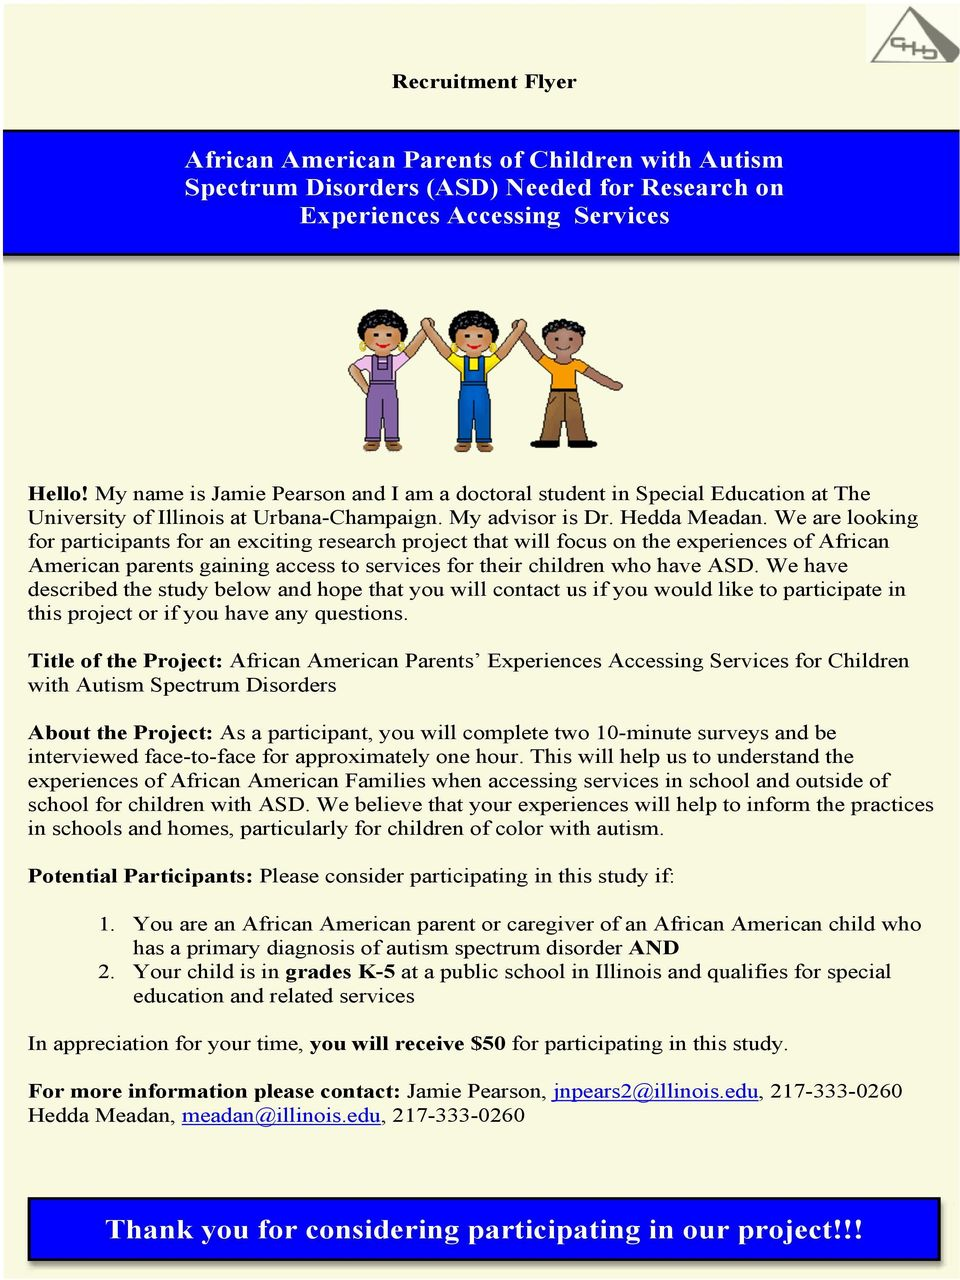 We are looking for participants for an exciting research project that will focus on the experiences of African American parents gaining access to services for their children who have ASD.